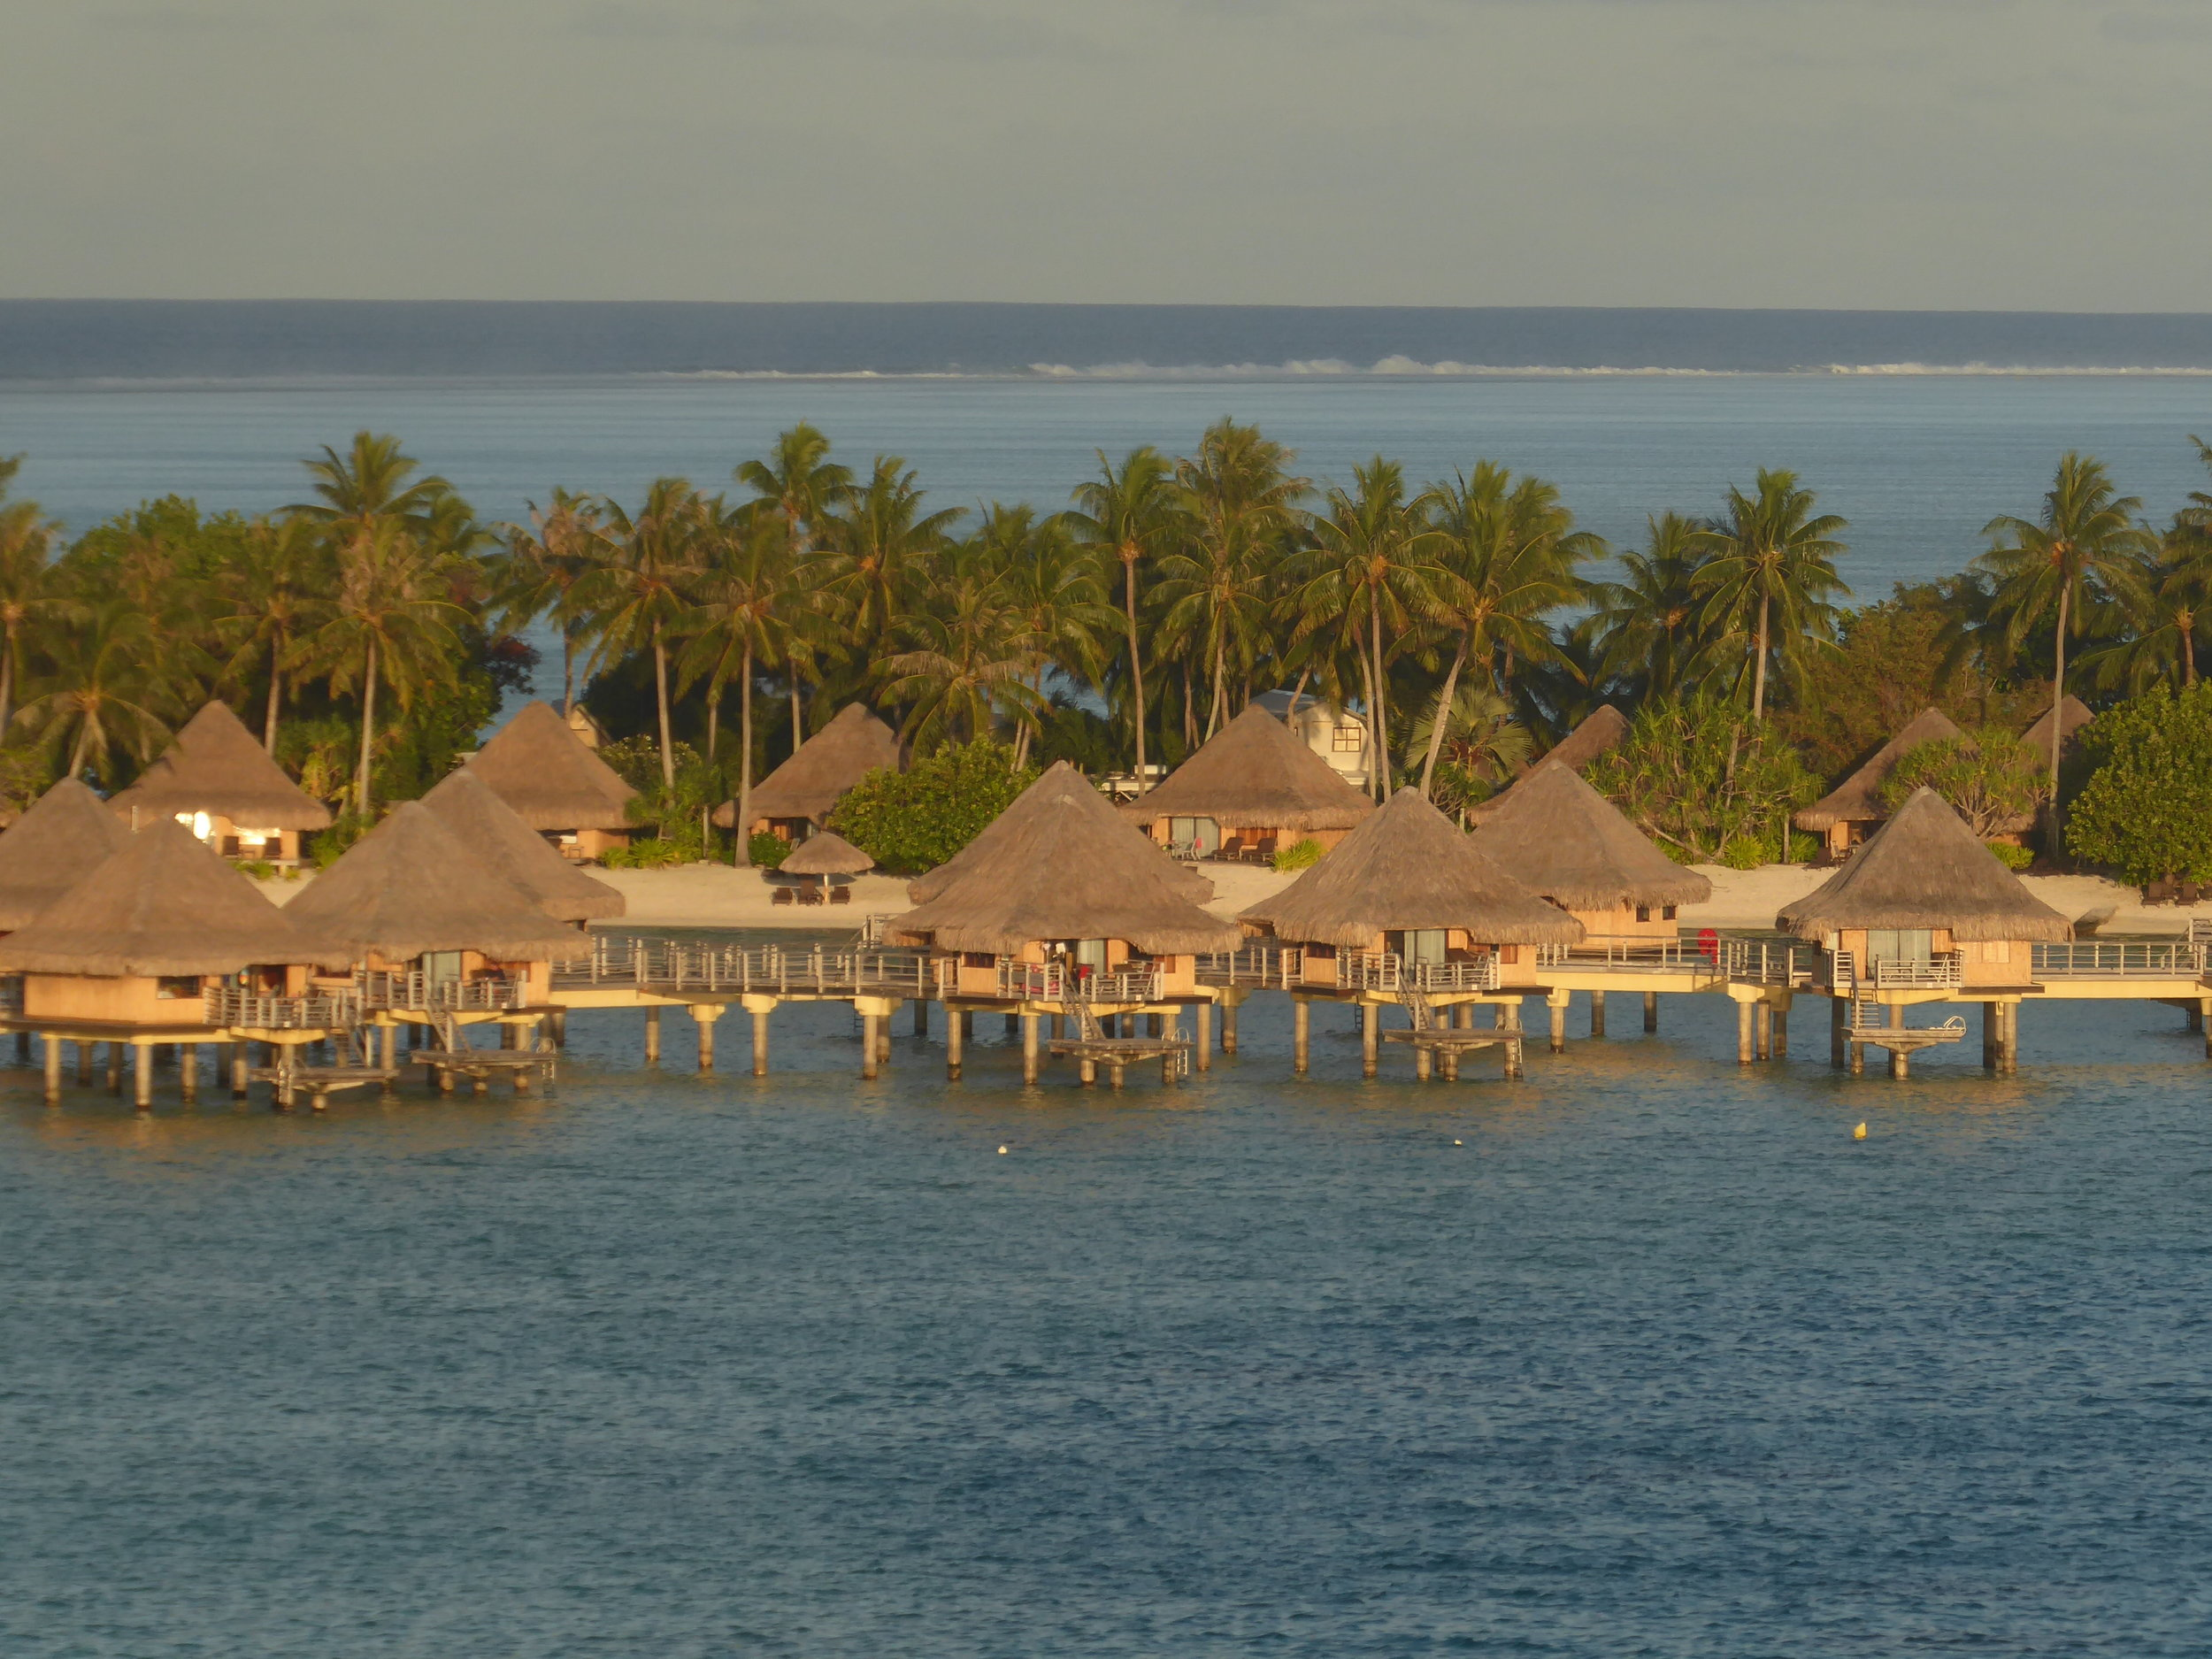 Are you prepared to forego a once in a lifetime experience of staying in over-the-water bungalows?